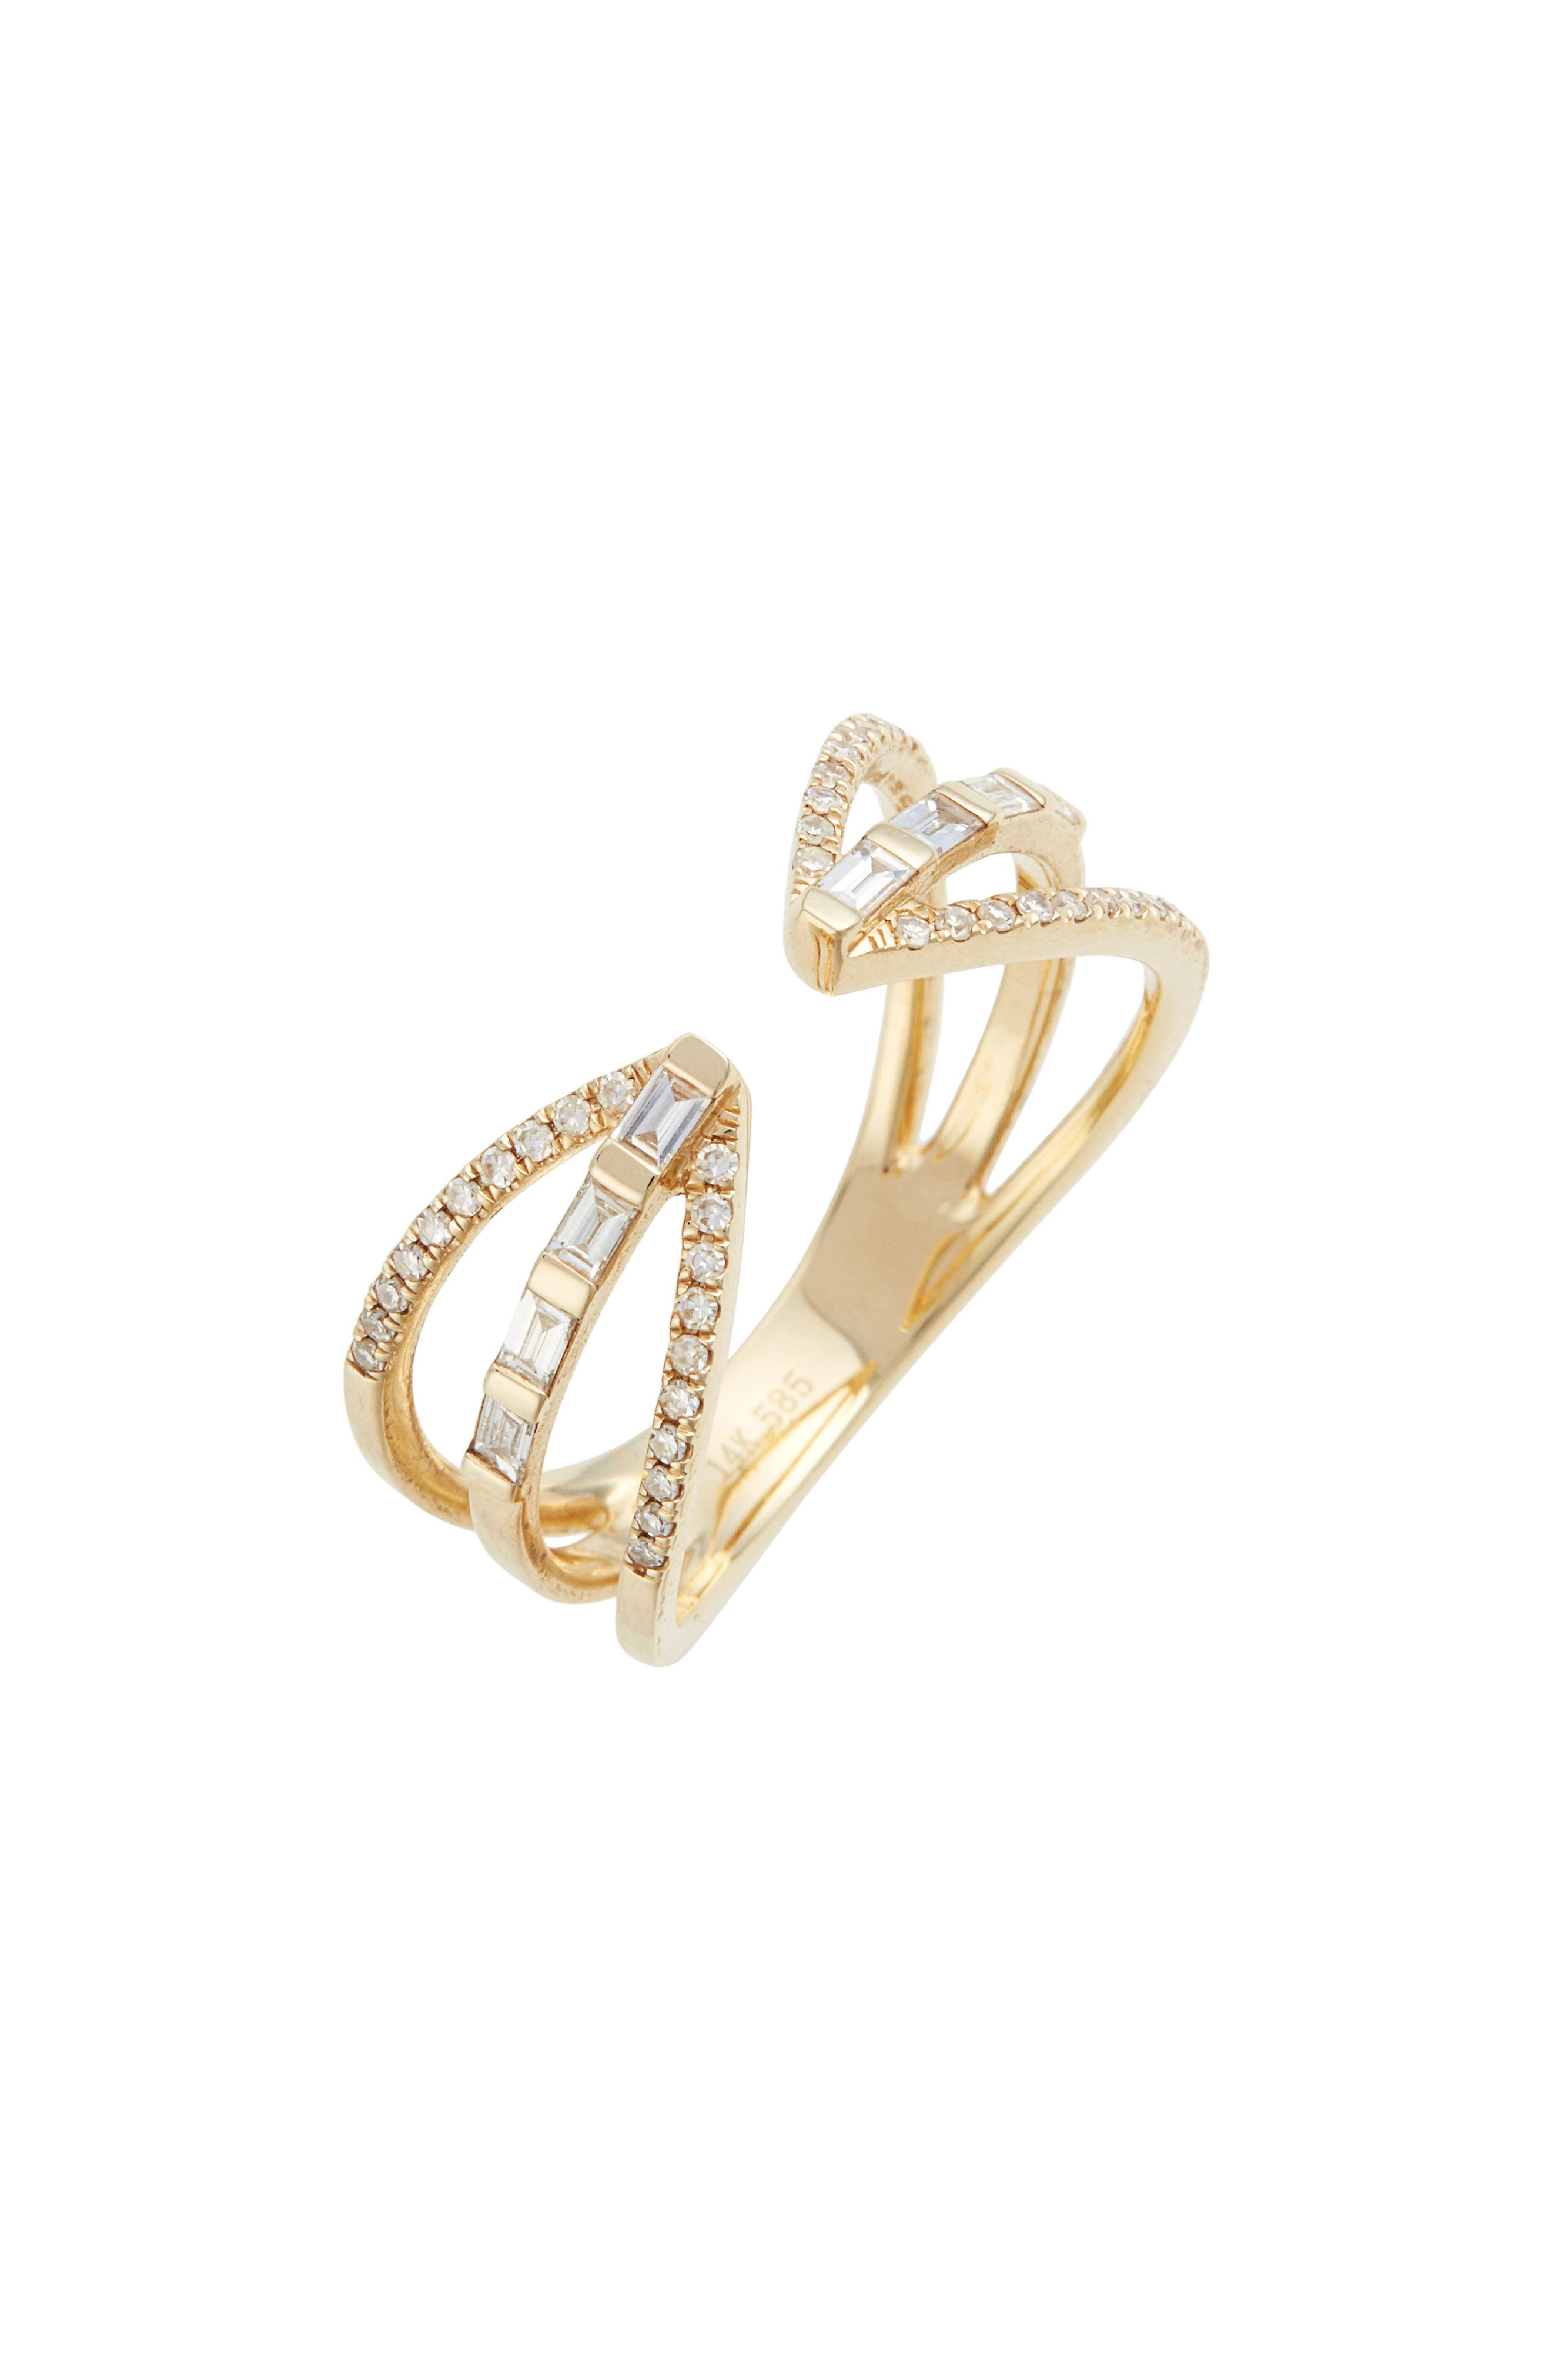 Open Baguette Queen Diamond Ring,                             Main thumbnail 1, color,                             Yellow Gold